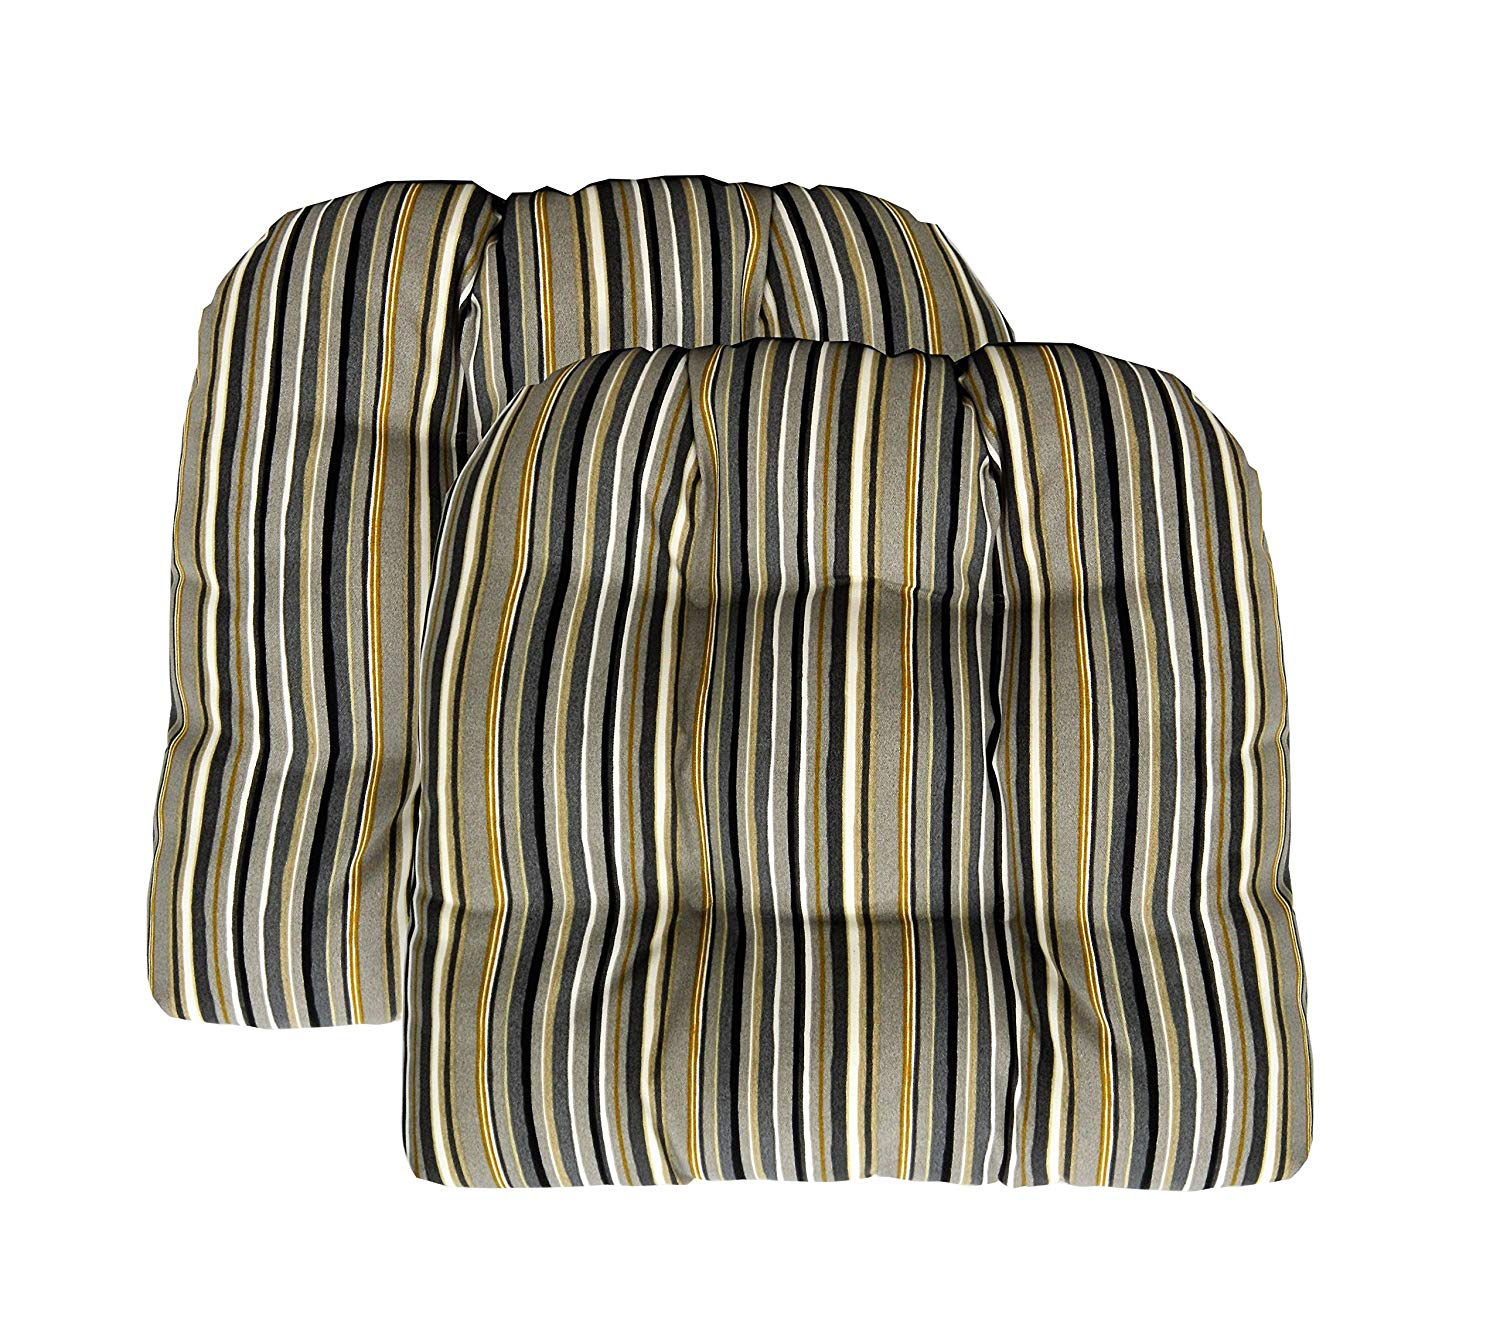 """RSH Décor Set of 2 Indoor Outdoor Wicker Tufted Large(21"""" x 21"""") U - Shape Chair Cushions - Tan Black Gold Grey/Gray Ivory Stripe Cushions"""